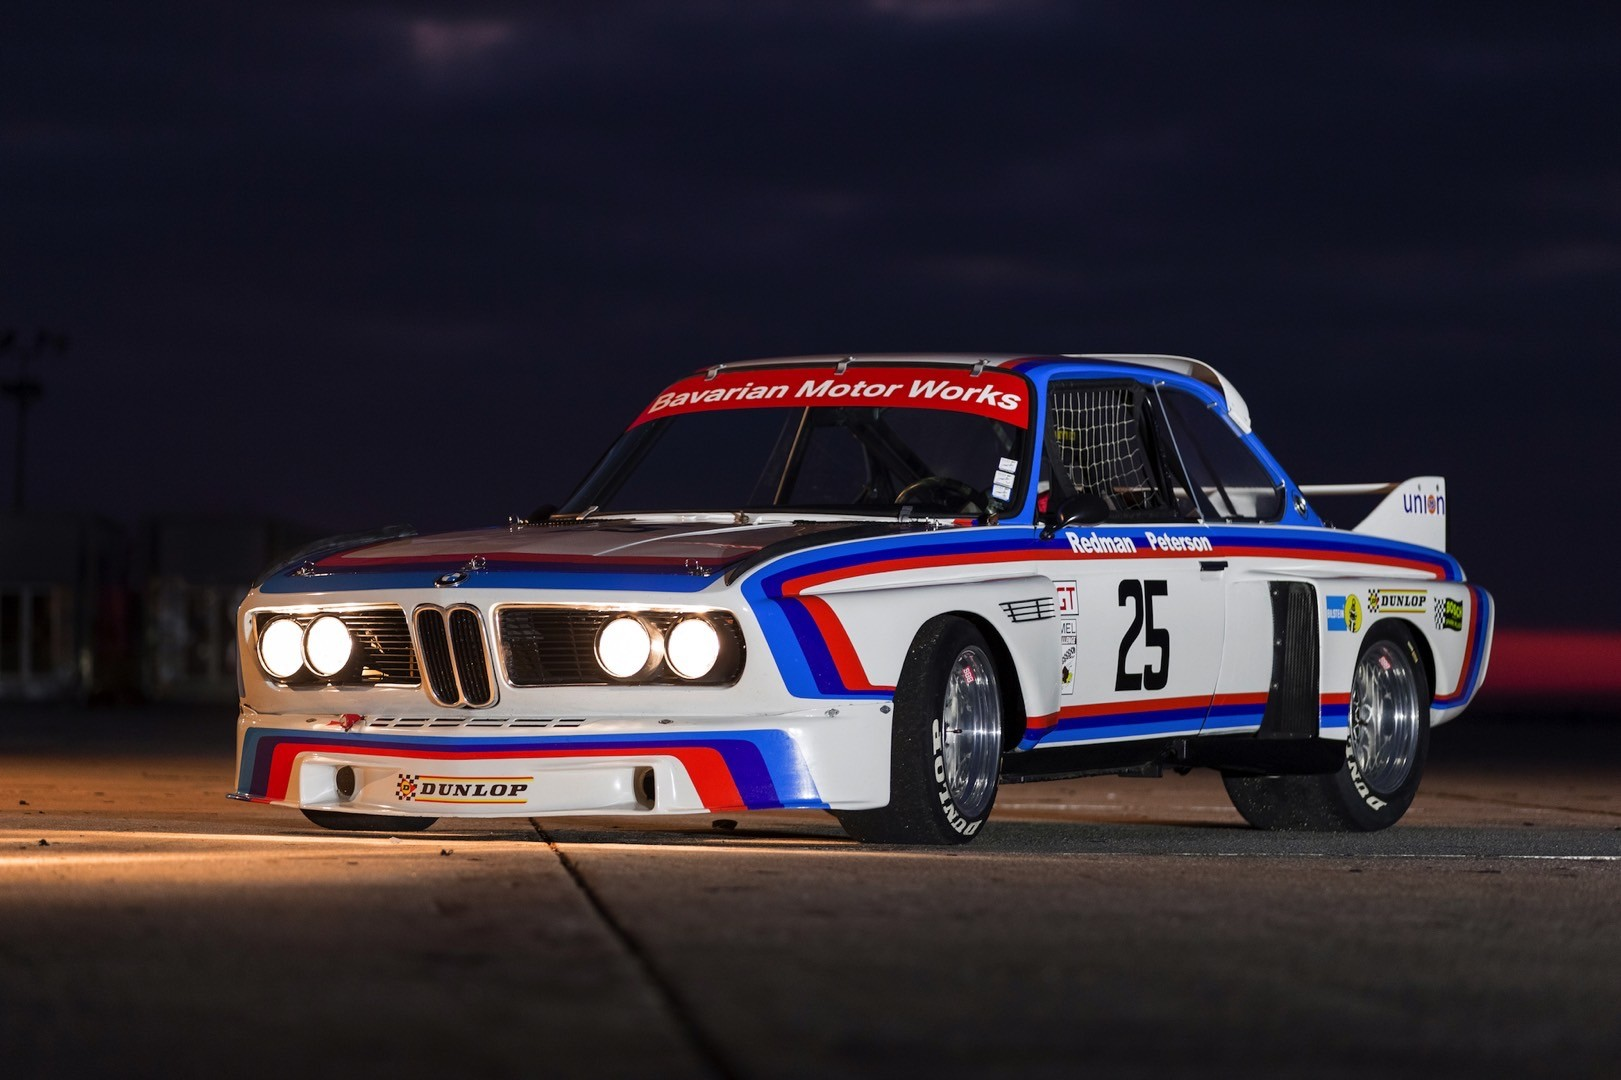 Bmw To Unveil A Z4 Gtlm Model With 3 0csl Inspired Livery